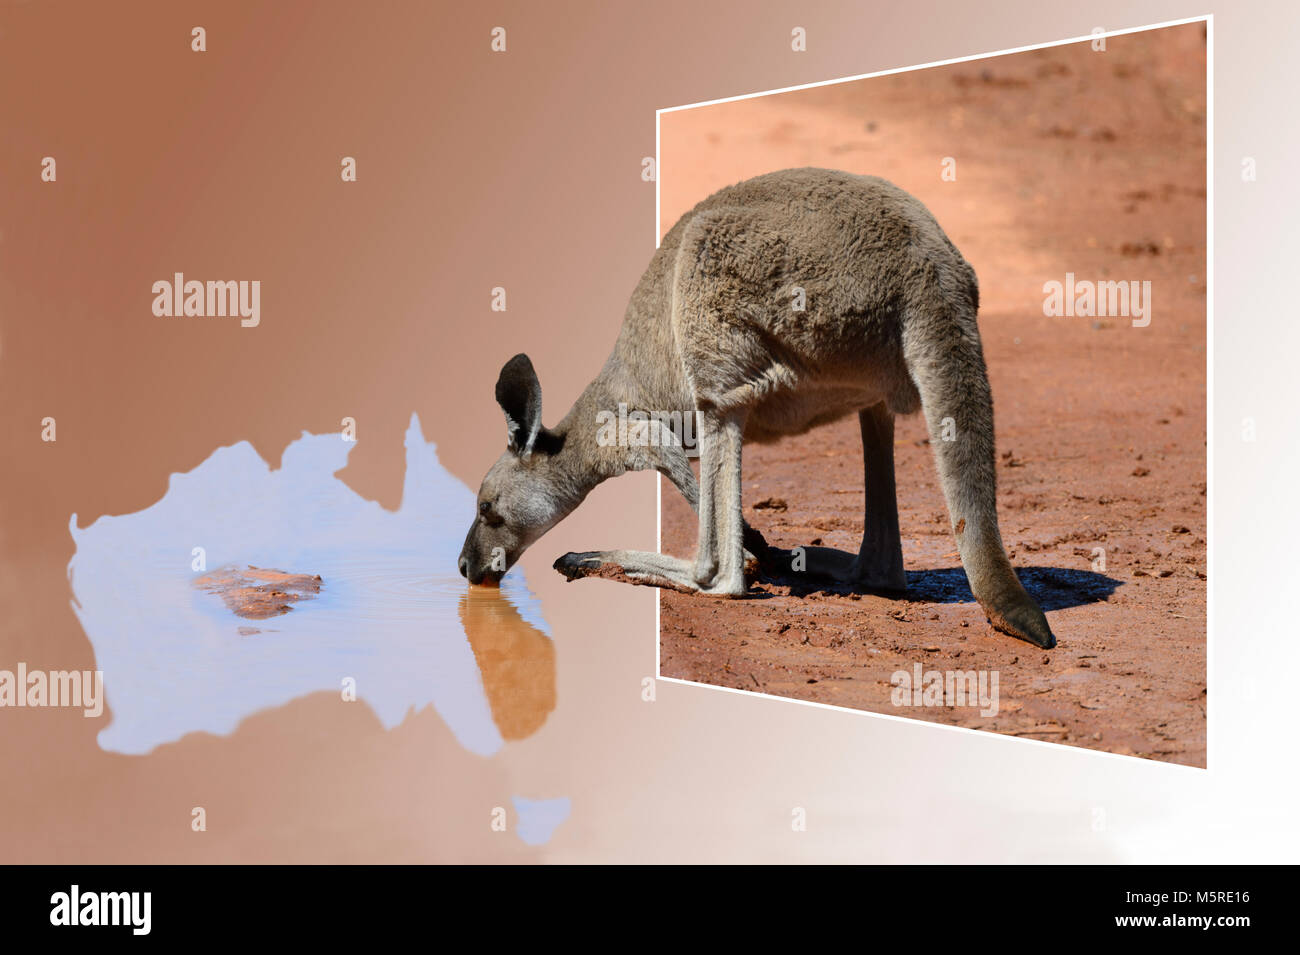 out-of-frame-kangaroo-drinking-from-a-pu